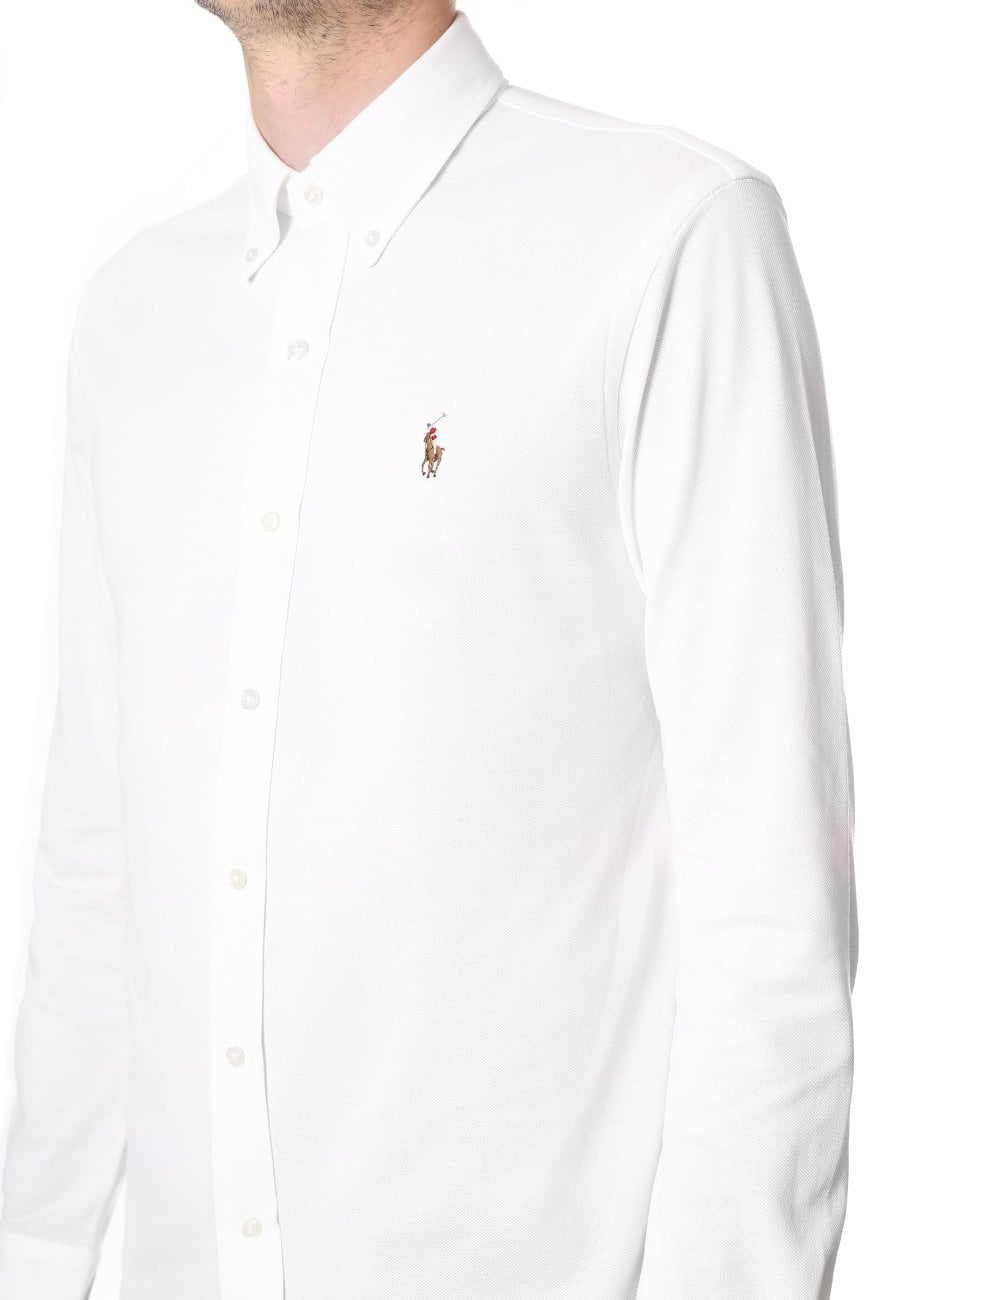 Polo Ralph Lauren Men s Oxford Knit Long Sleeve Shirt 36b87093300e